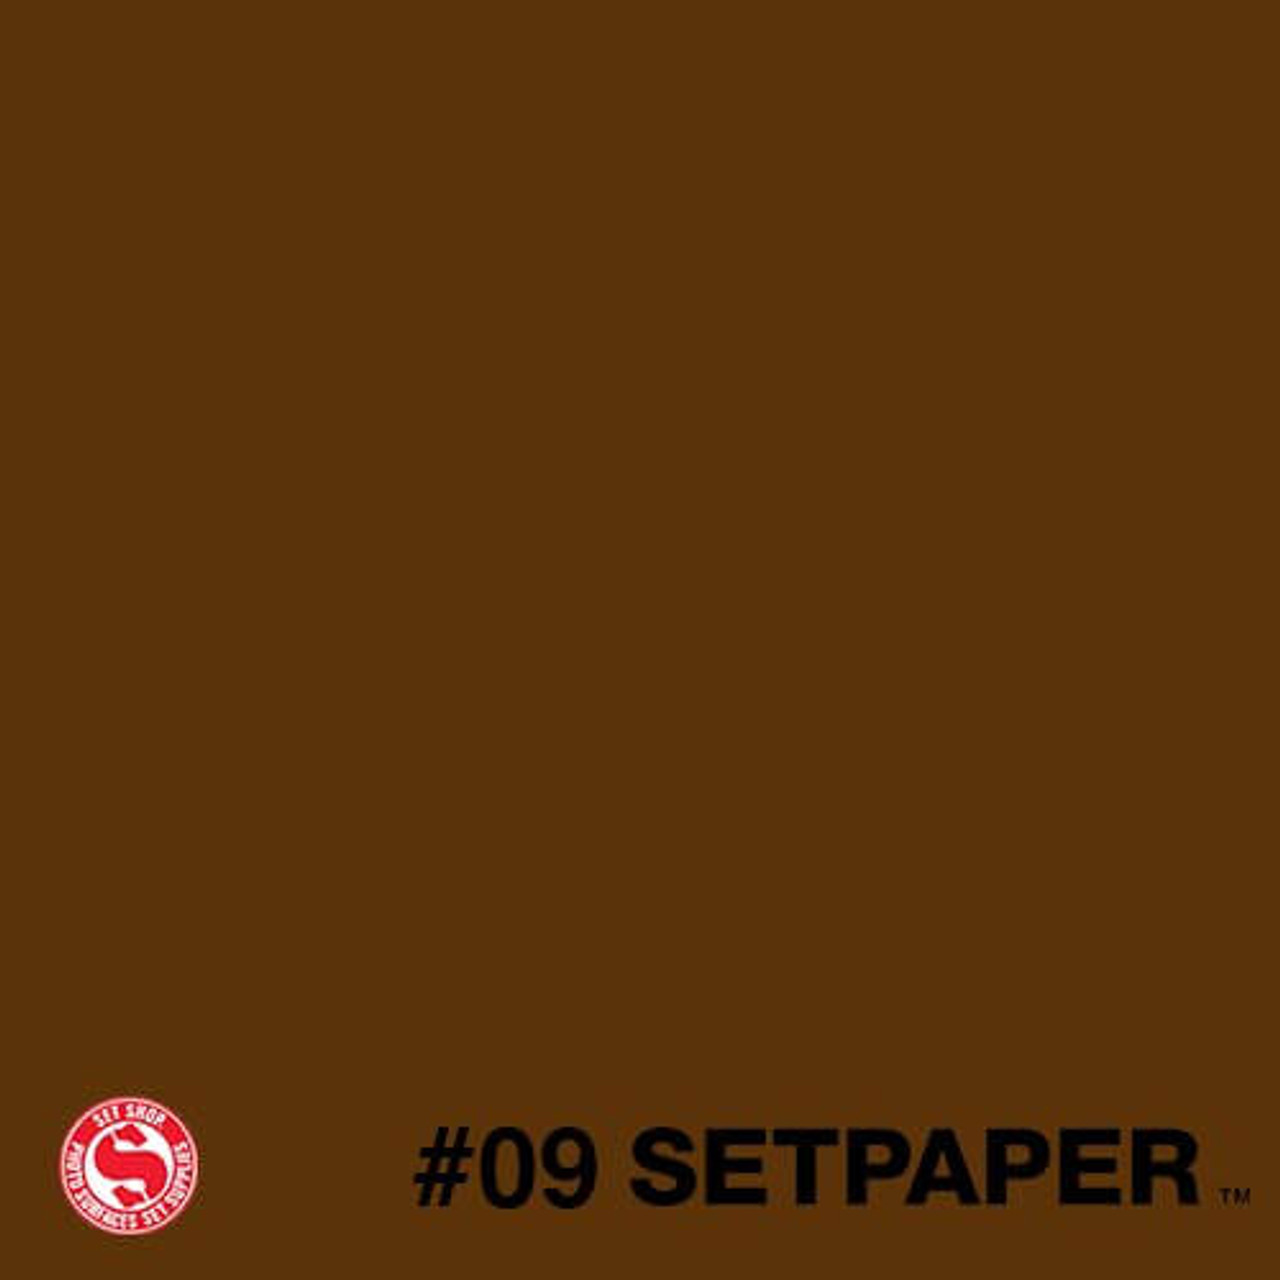 "109 SETPAPER - DARK BROWN 53"" x 36' (1.3 x 11m)"